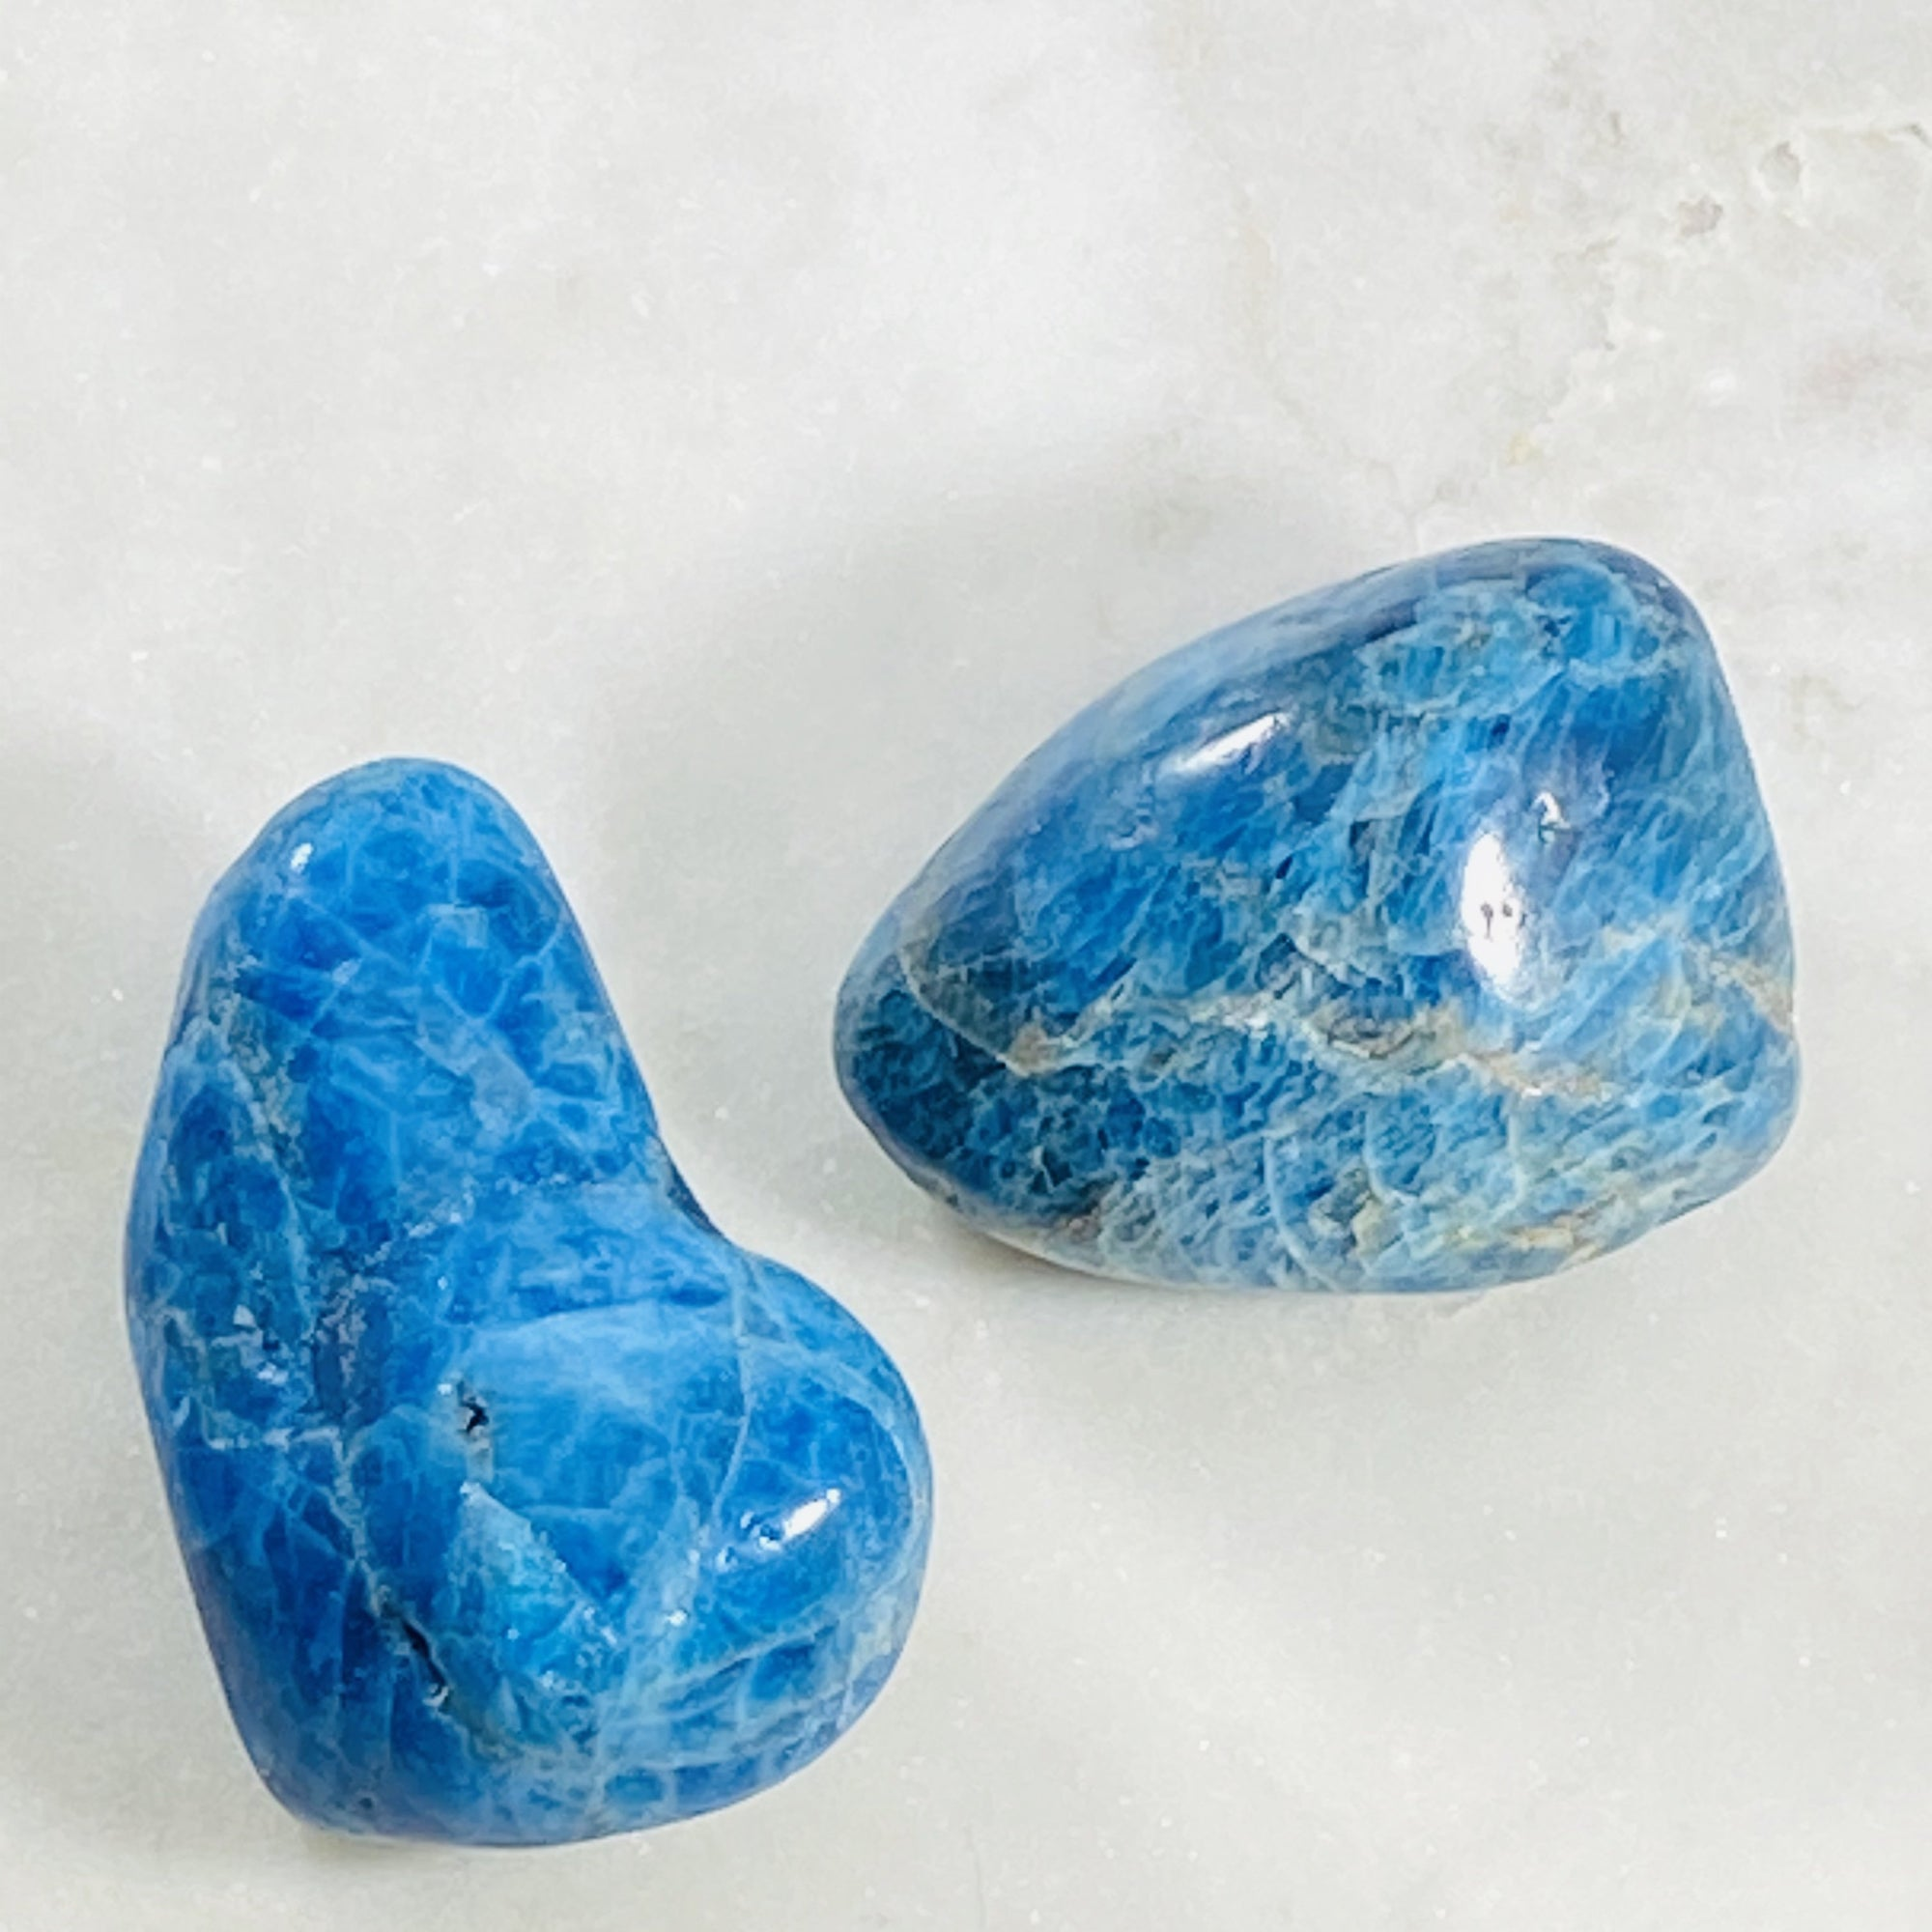 Large blue apatite healing gemstone and palm stone